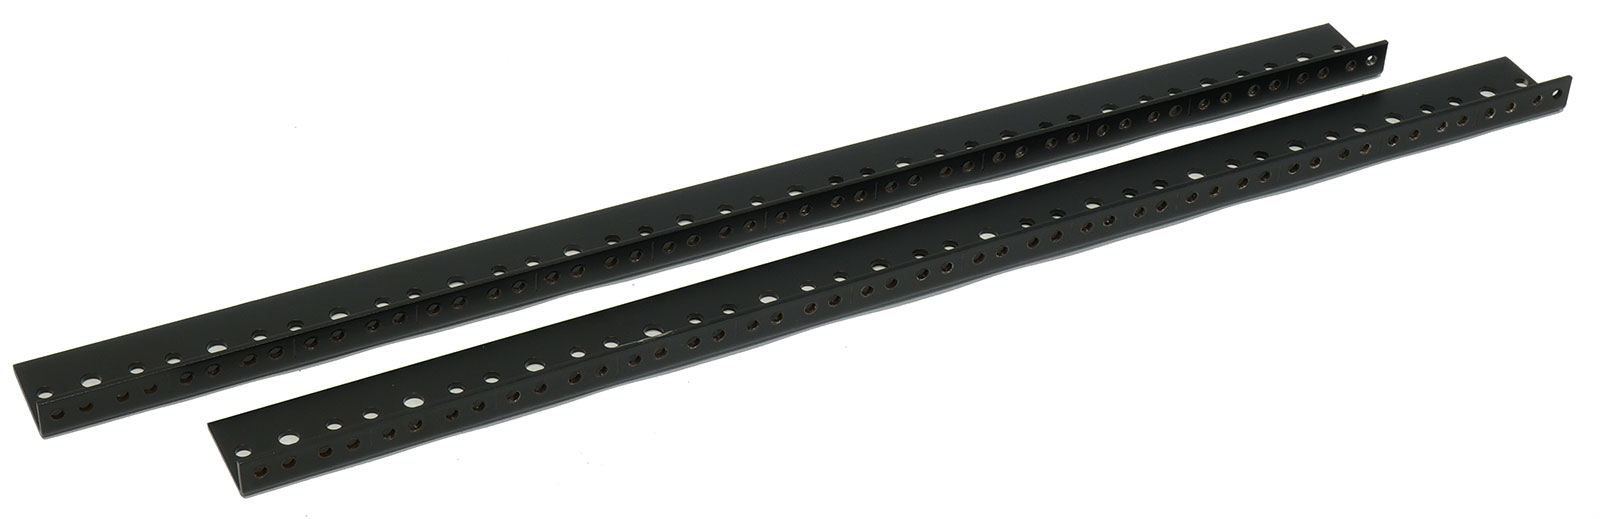 AudioRax Rack Rail Pair | 12 Space (12U) | 1/2RU Spacing